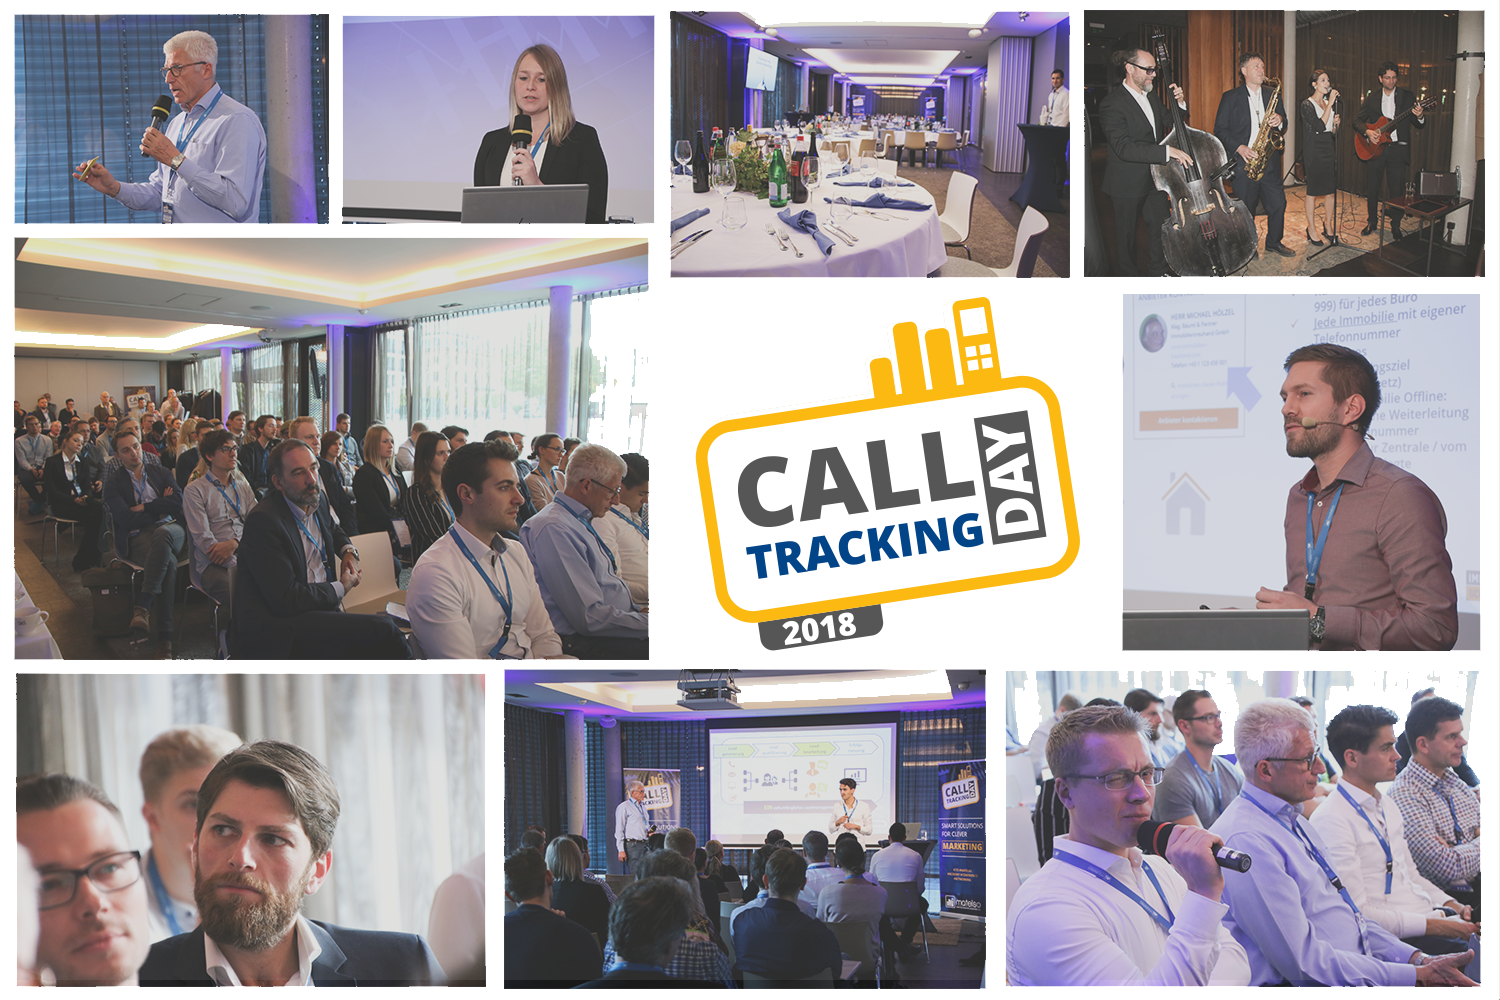 Call Tracking Day 2018